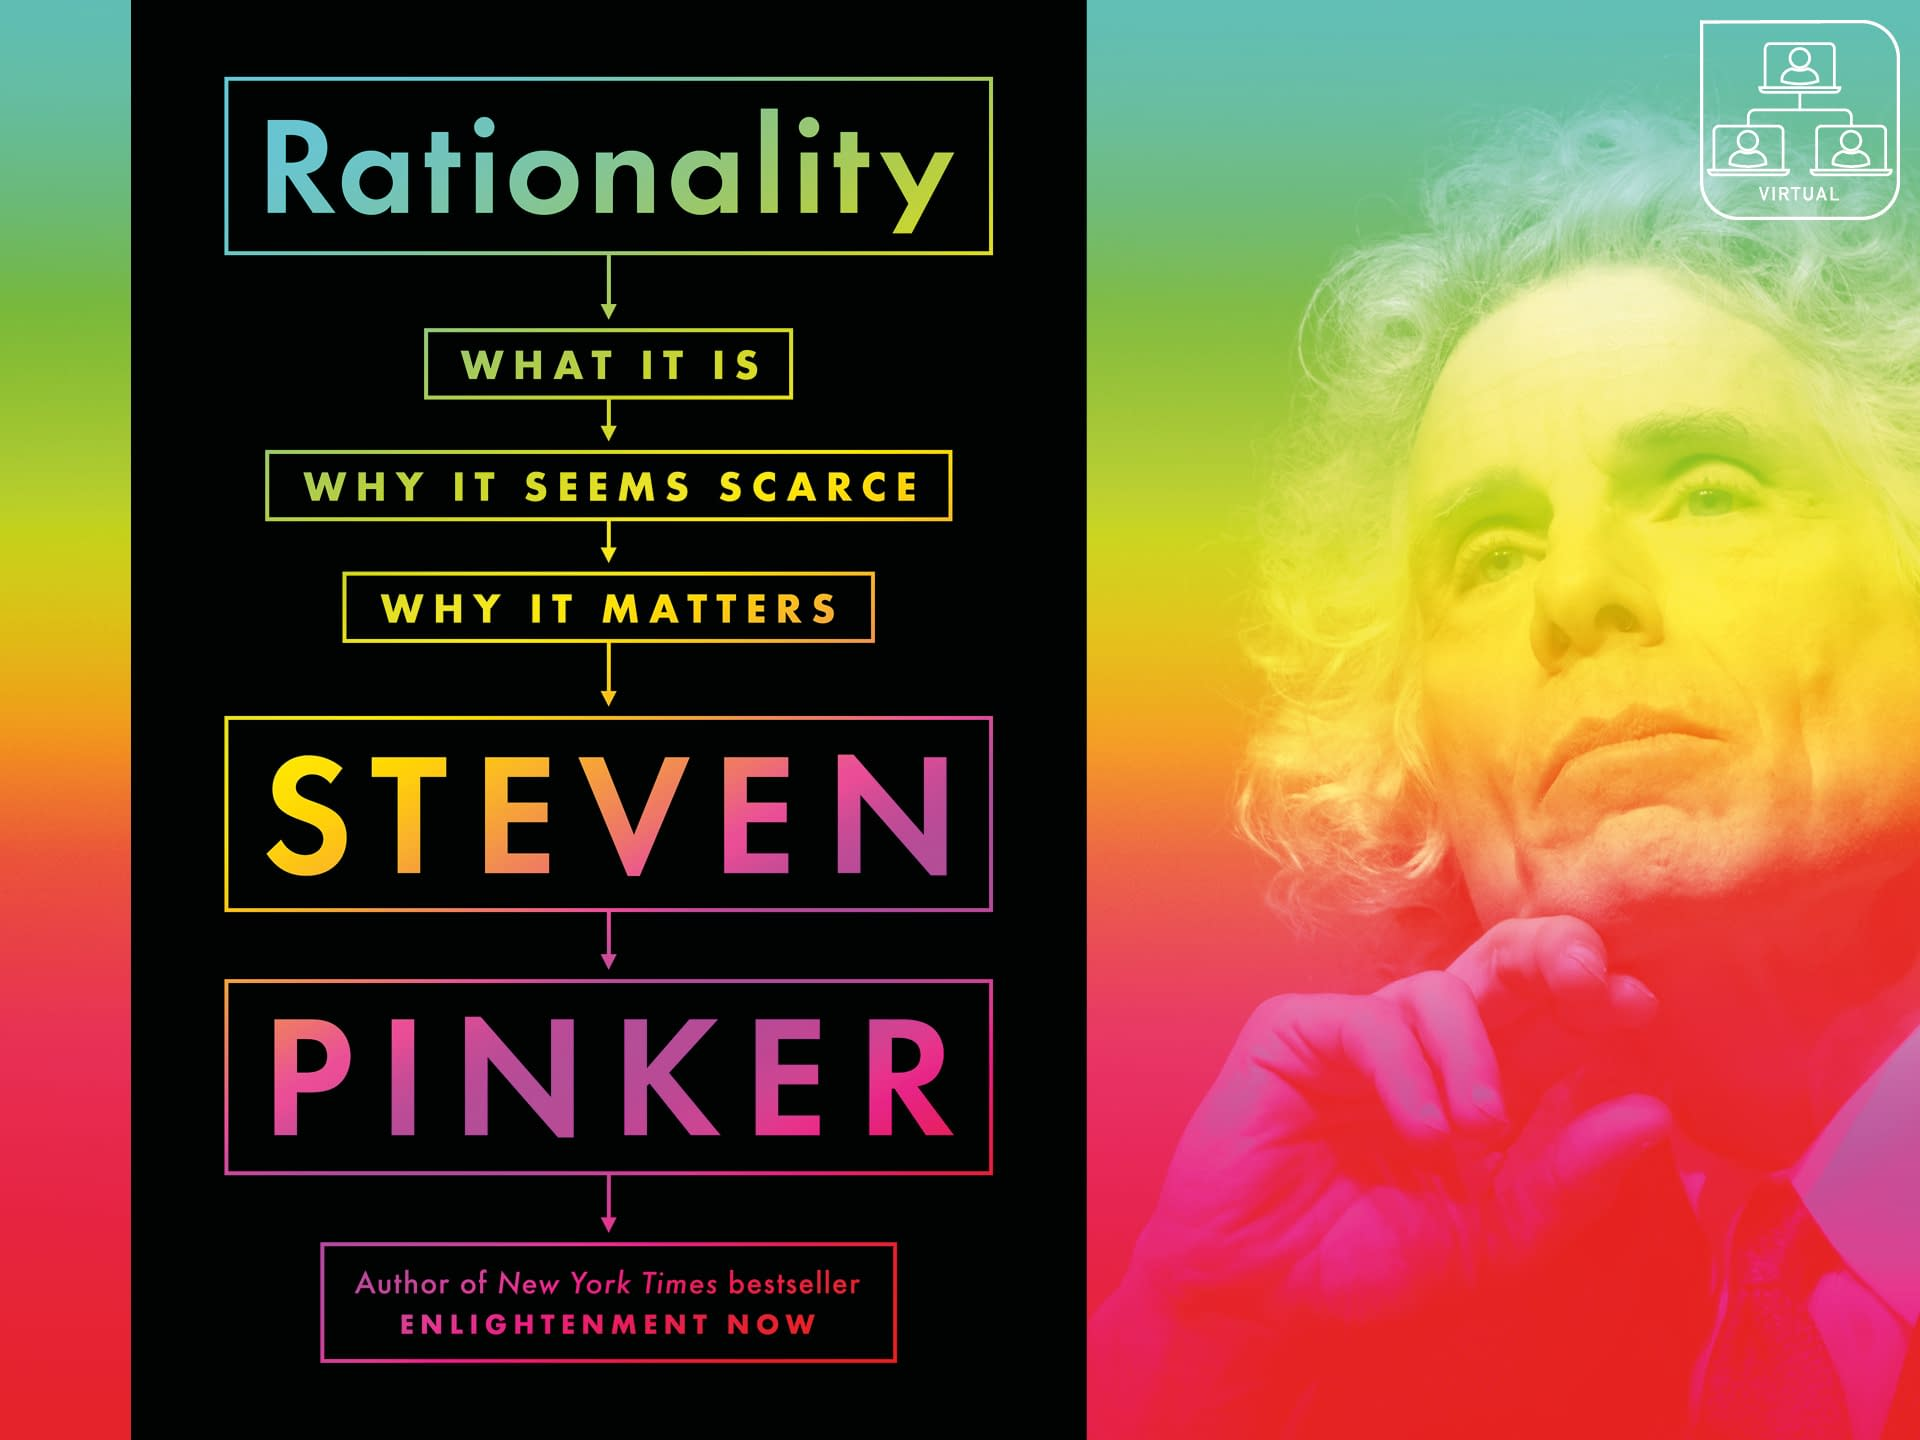 Rationality Matters: Steven Pinker's Road Map to Promoting It 3 - - author